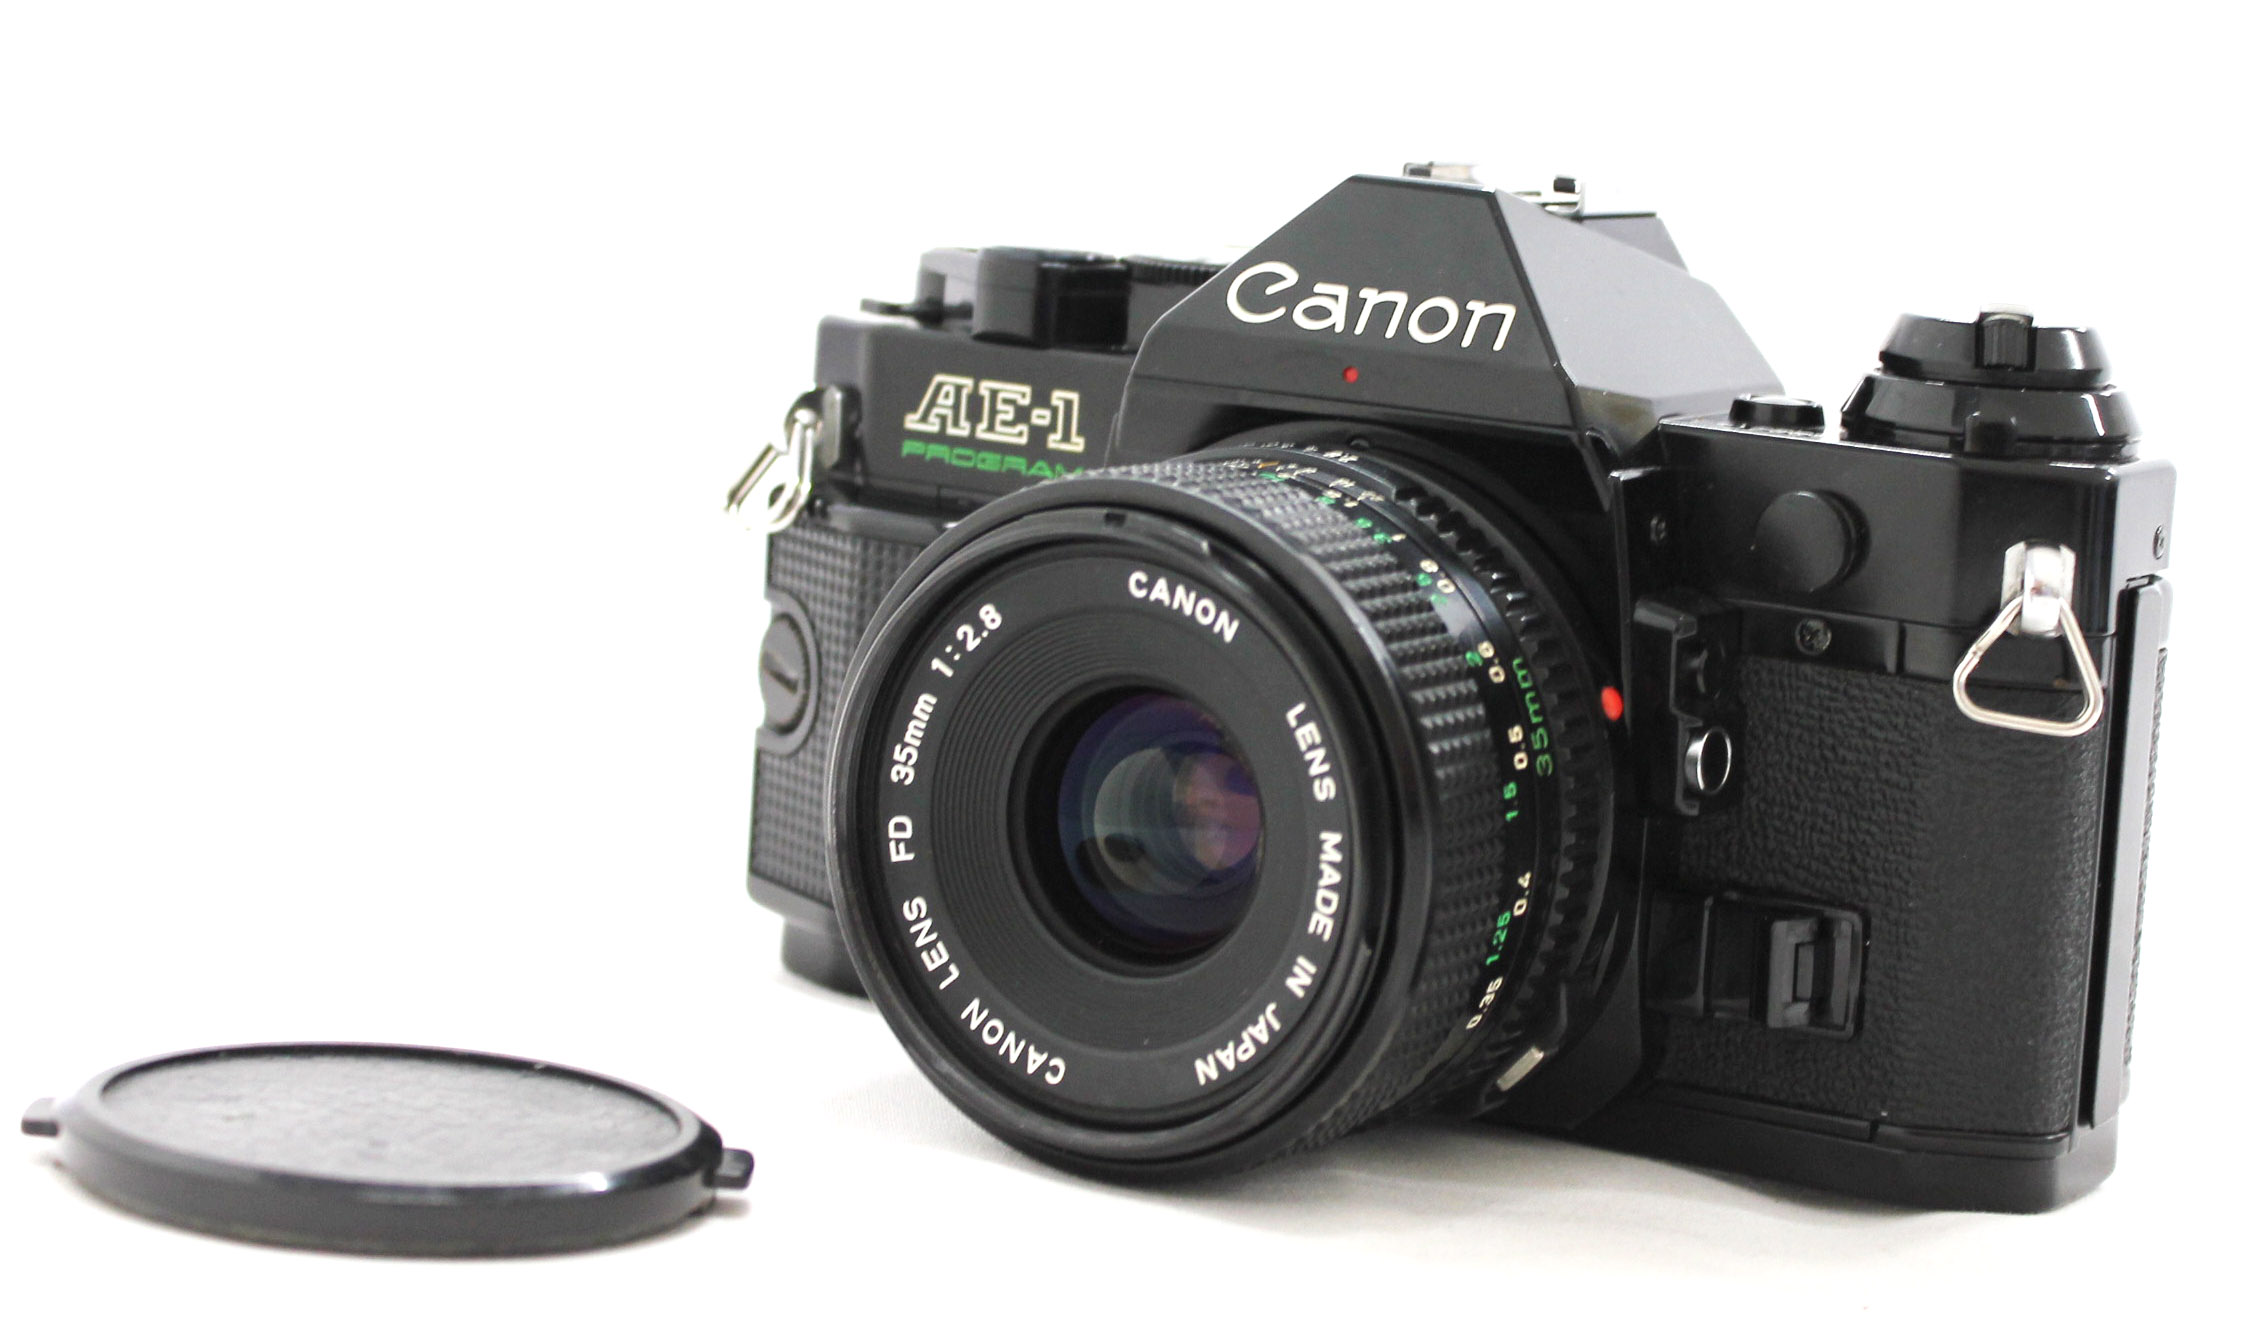 Canon AE-1 Program 35mm SLR Film Camera Black with New FD 35mm F/2.8 Lens from Japan Photo 0